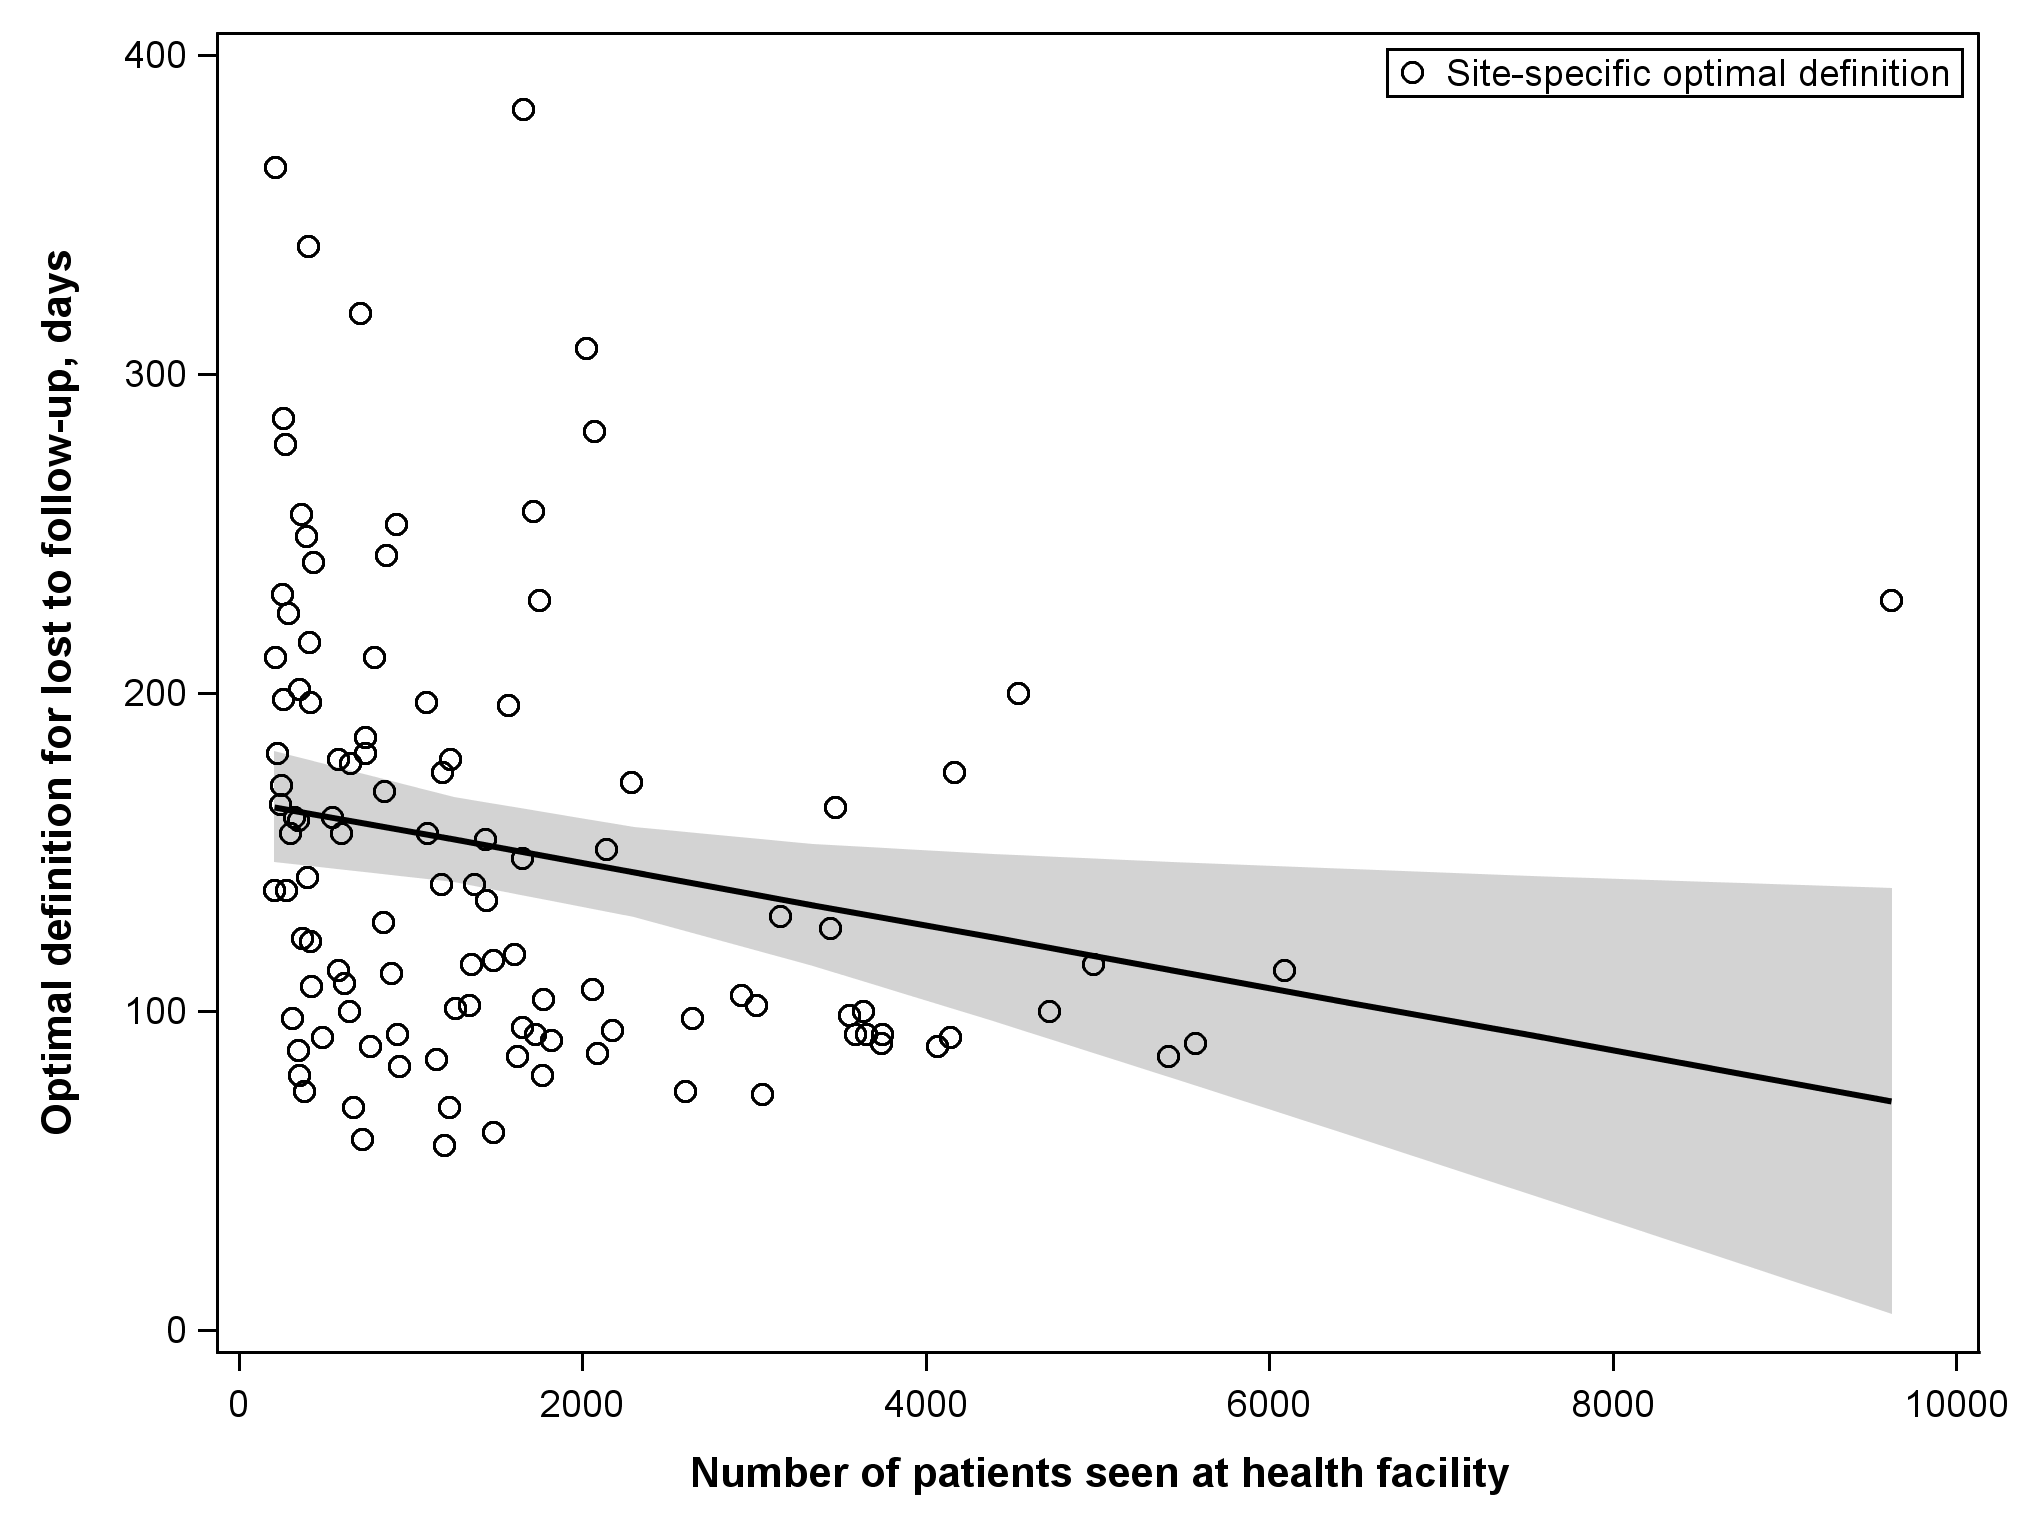 Association between patient volume and optimal definition for loss to follow-up across 111 participating facilities.